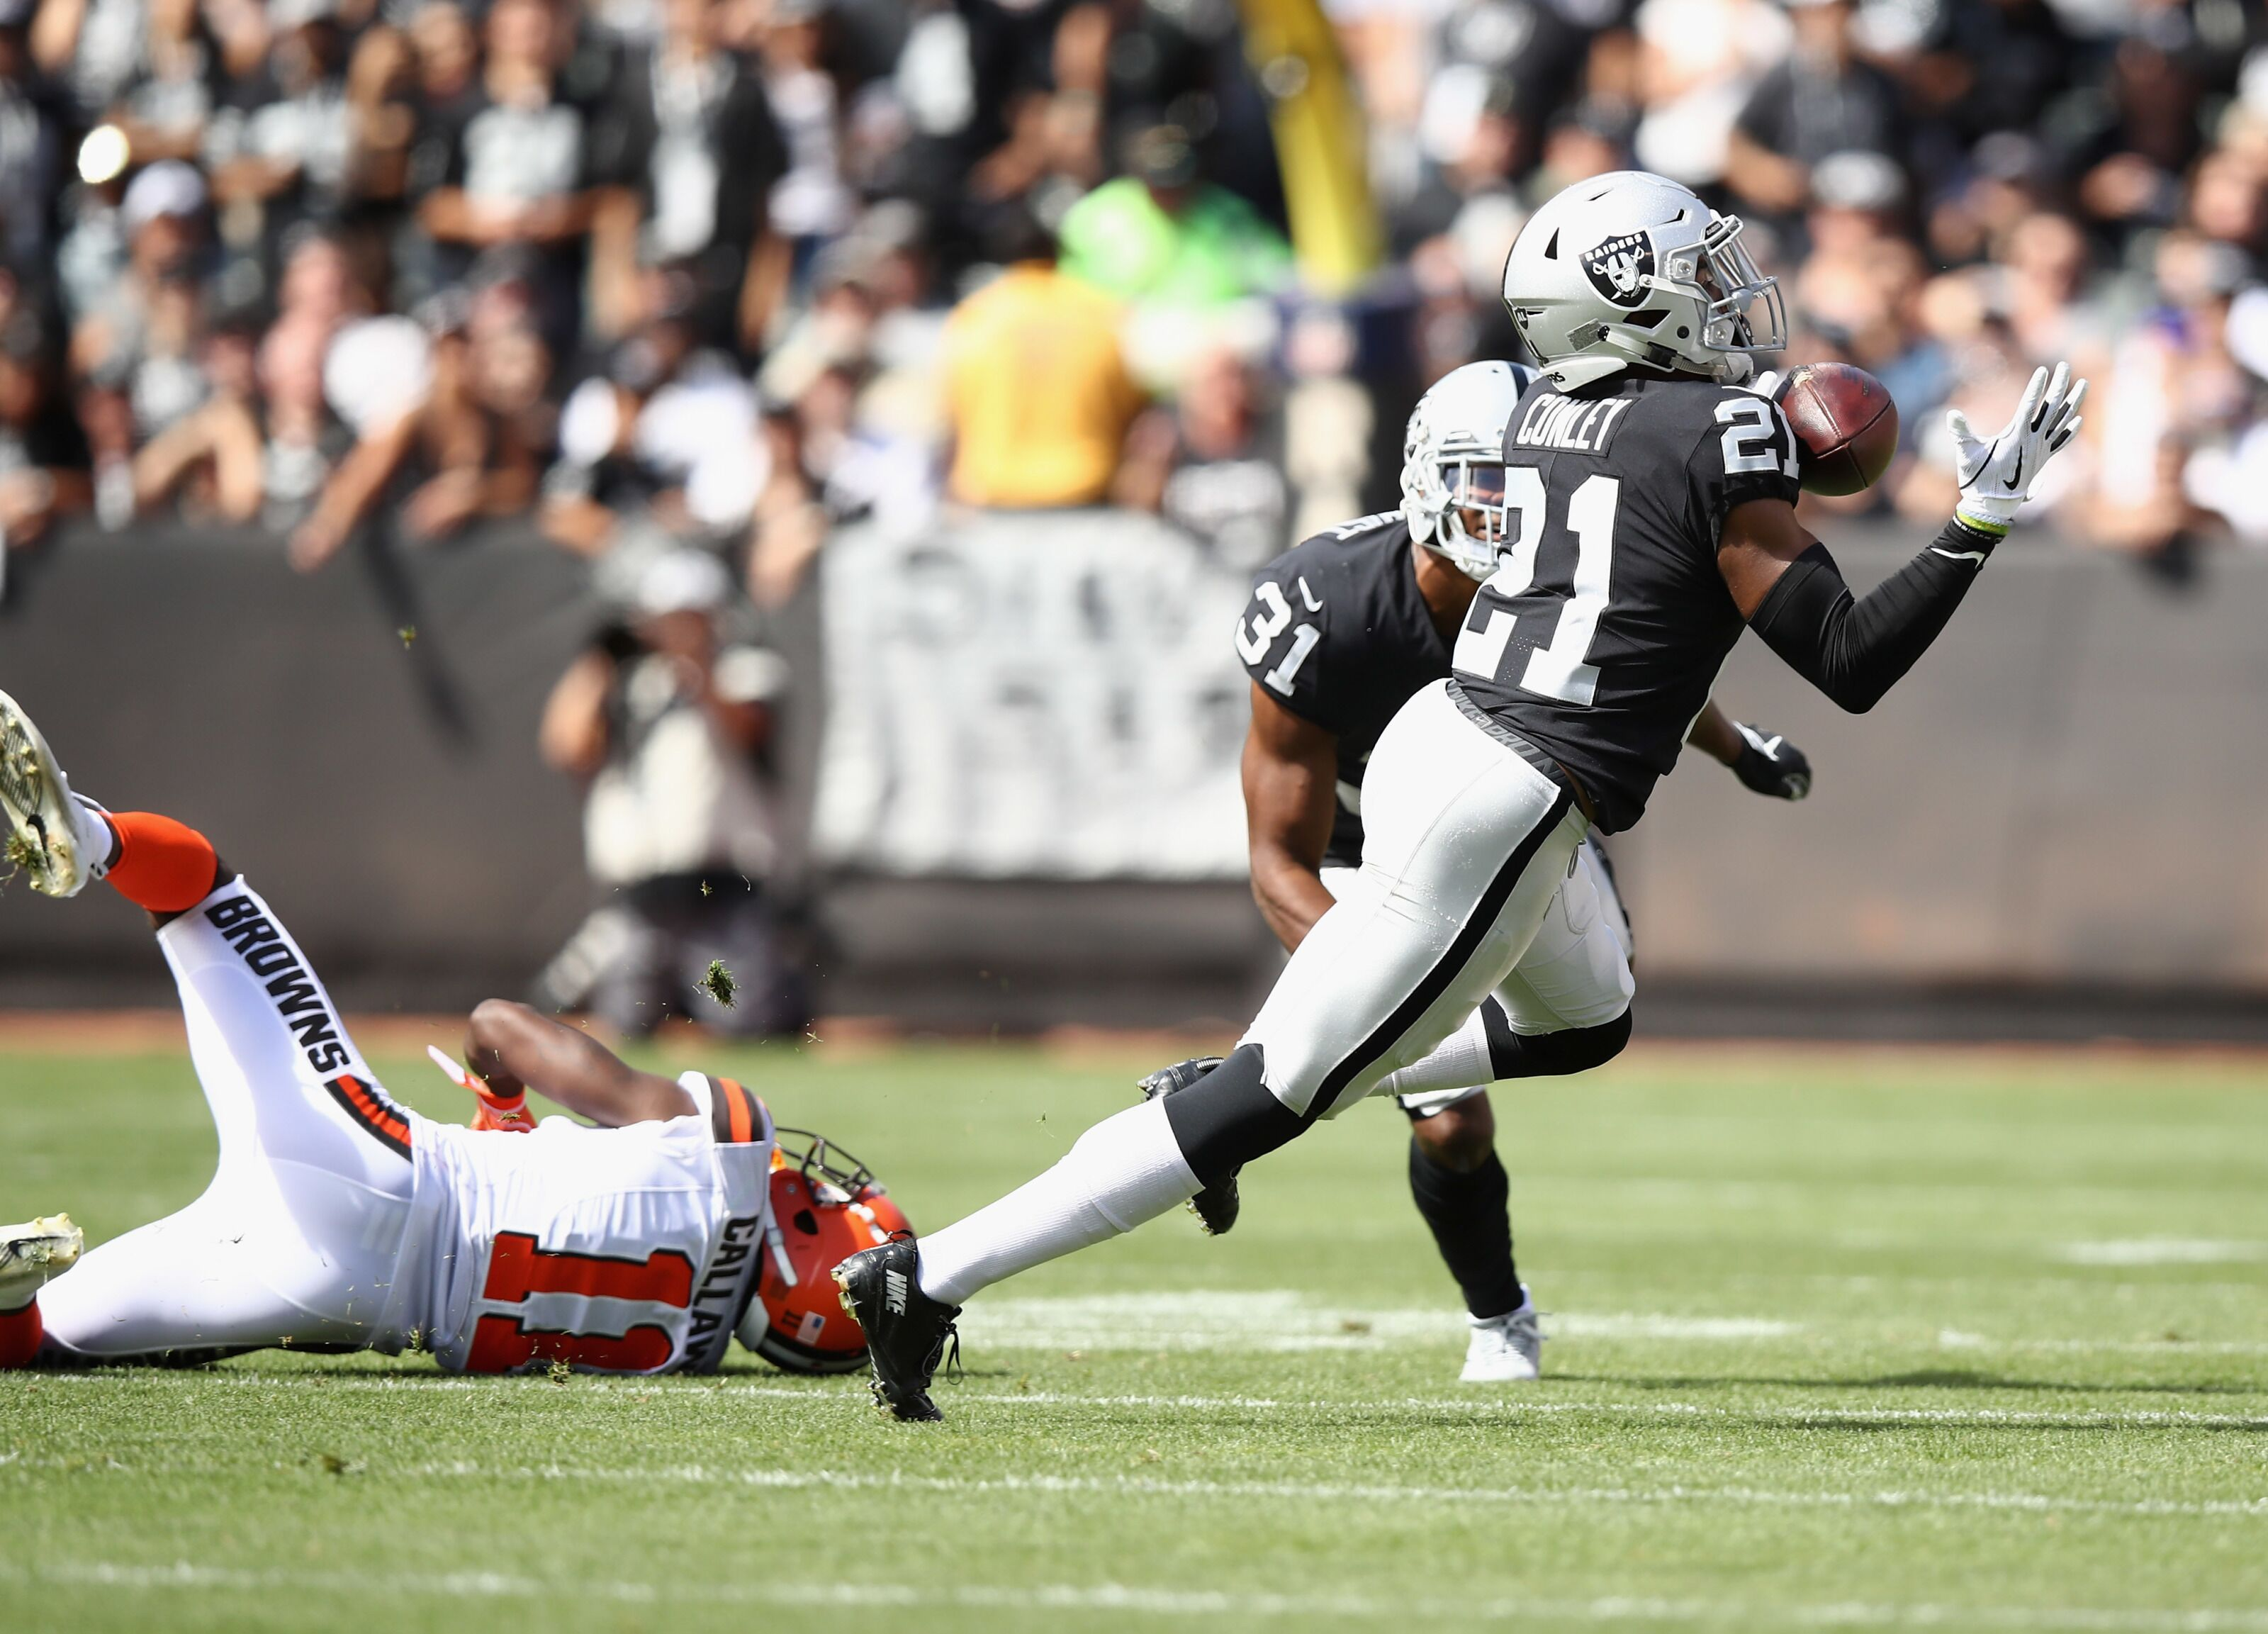 Oakland Raiders: Gareon Conley expected to see increase in snaps